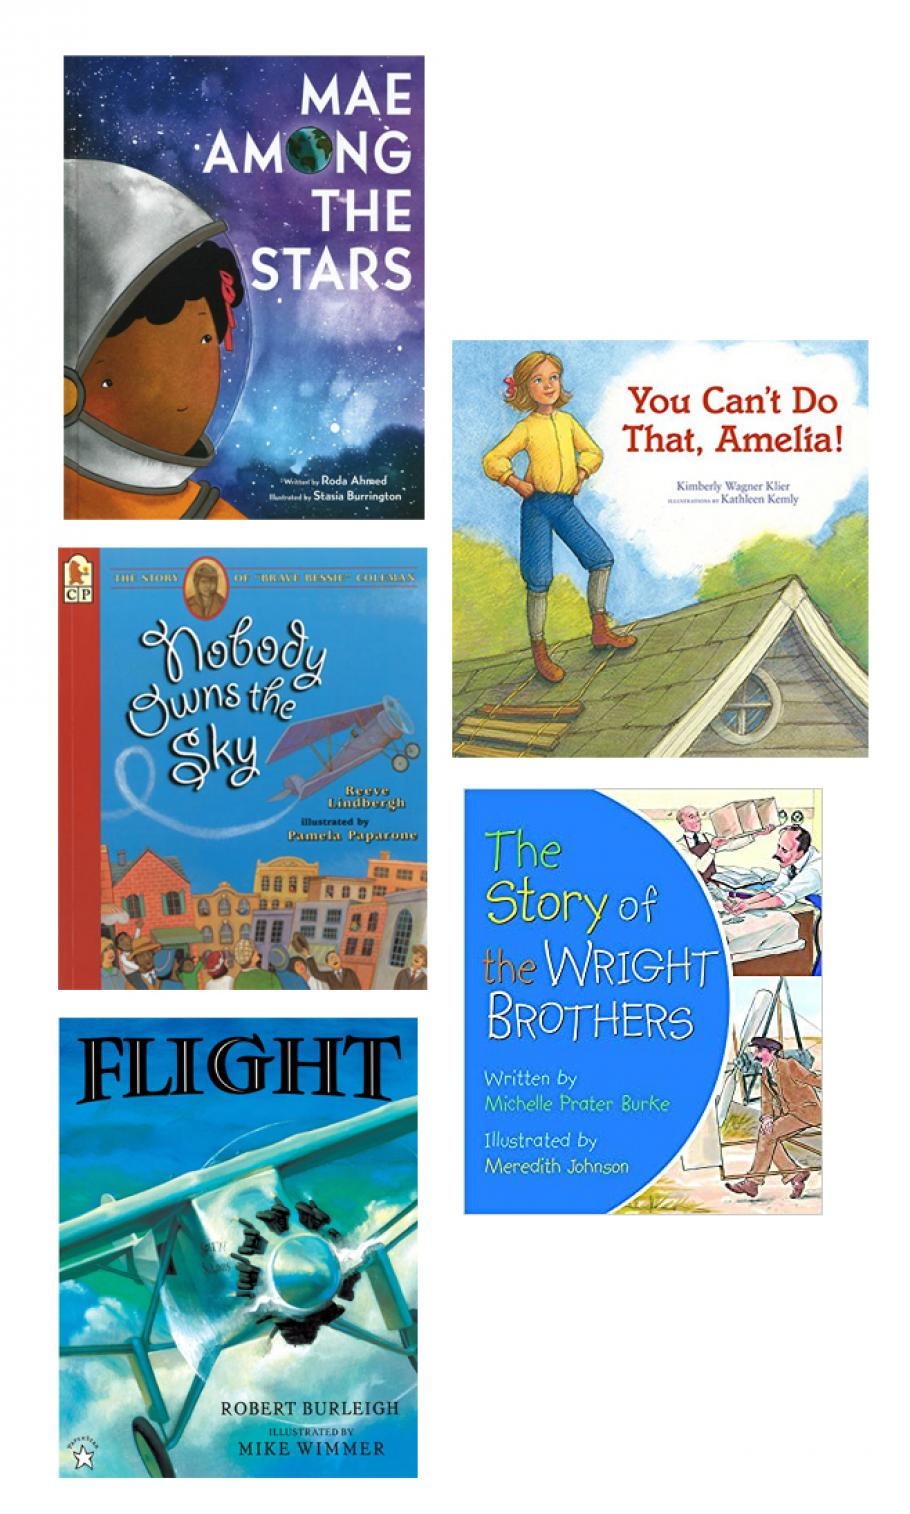 A composite image showing five children's book covers about air and space.